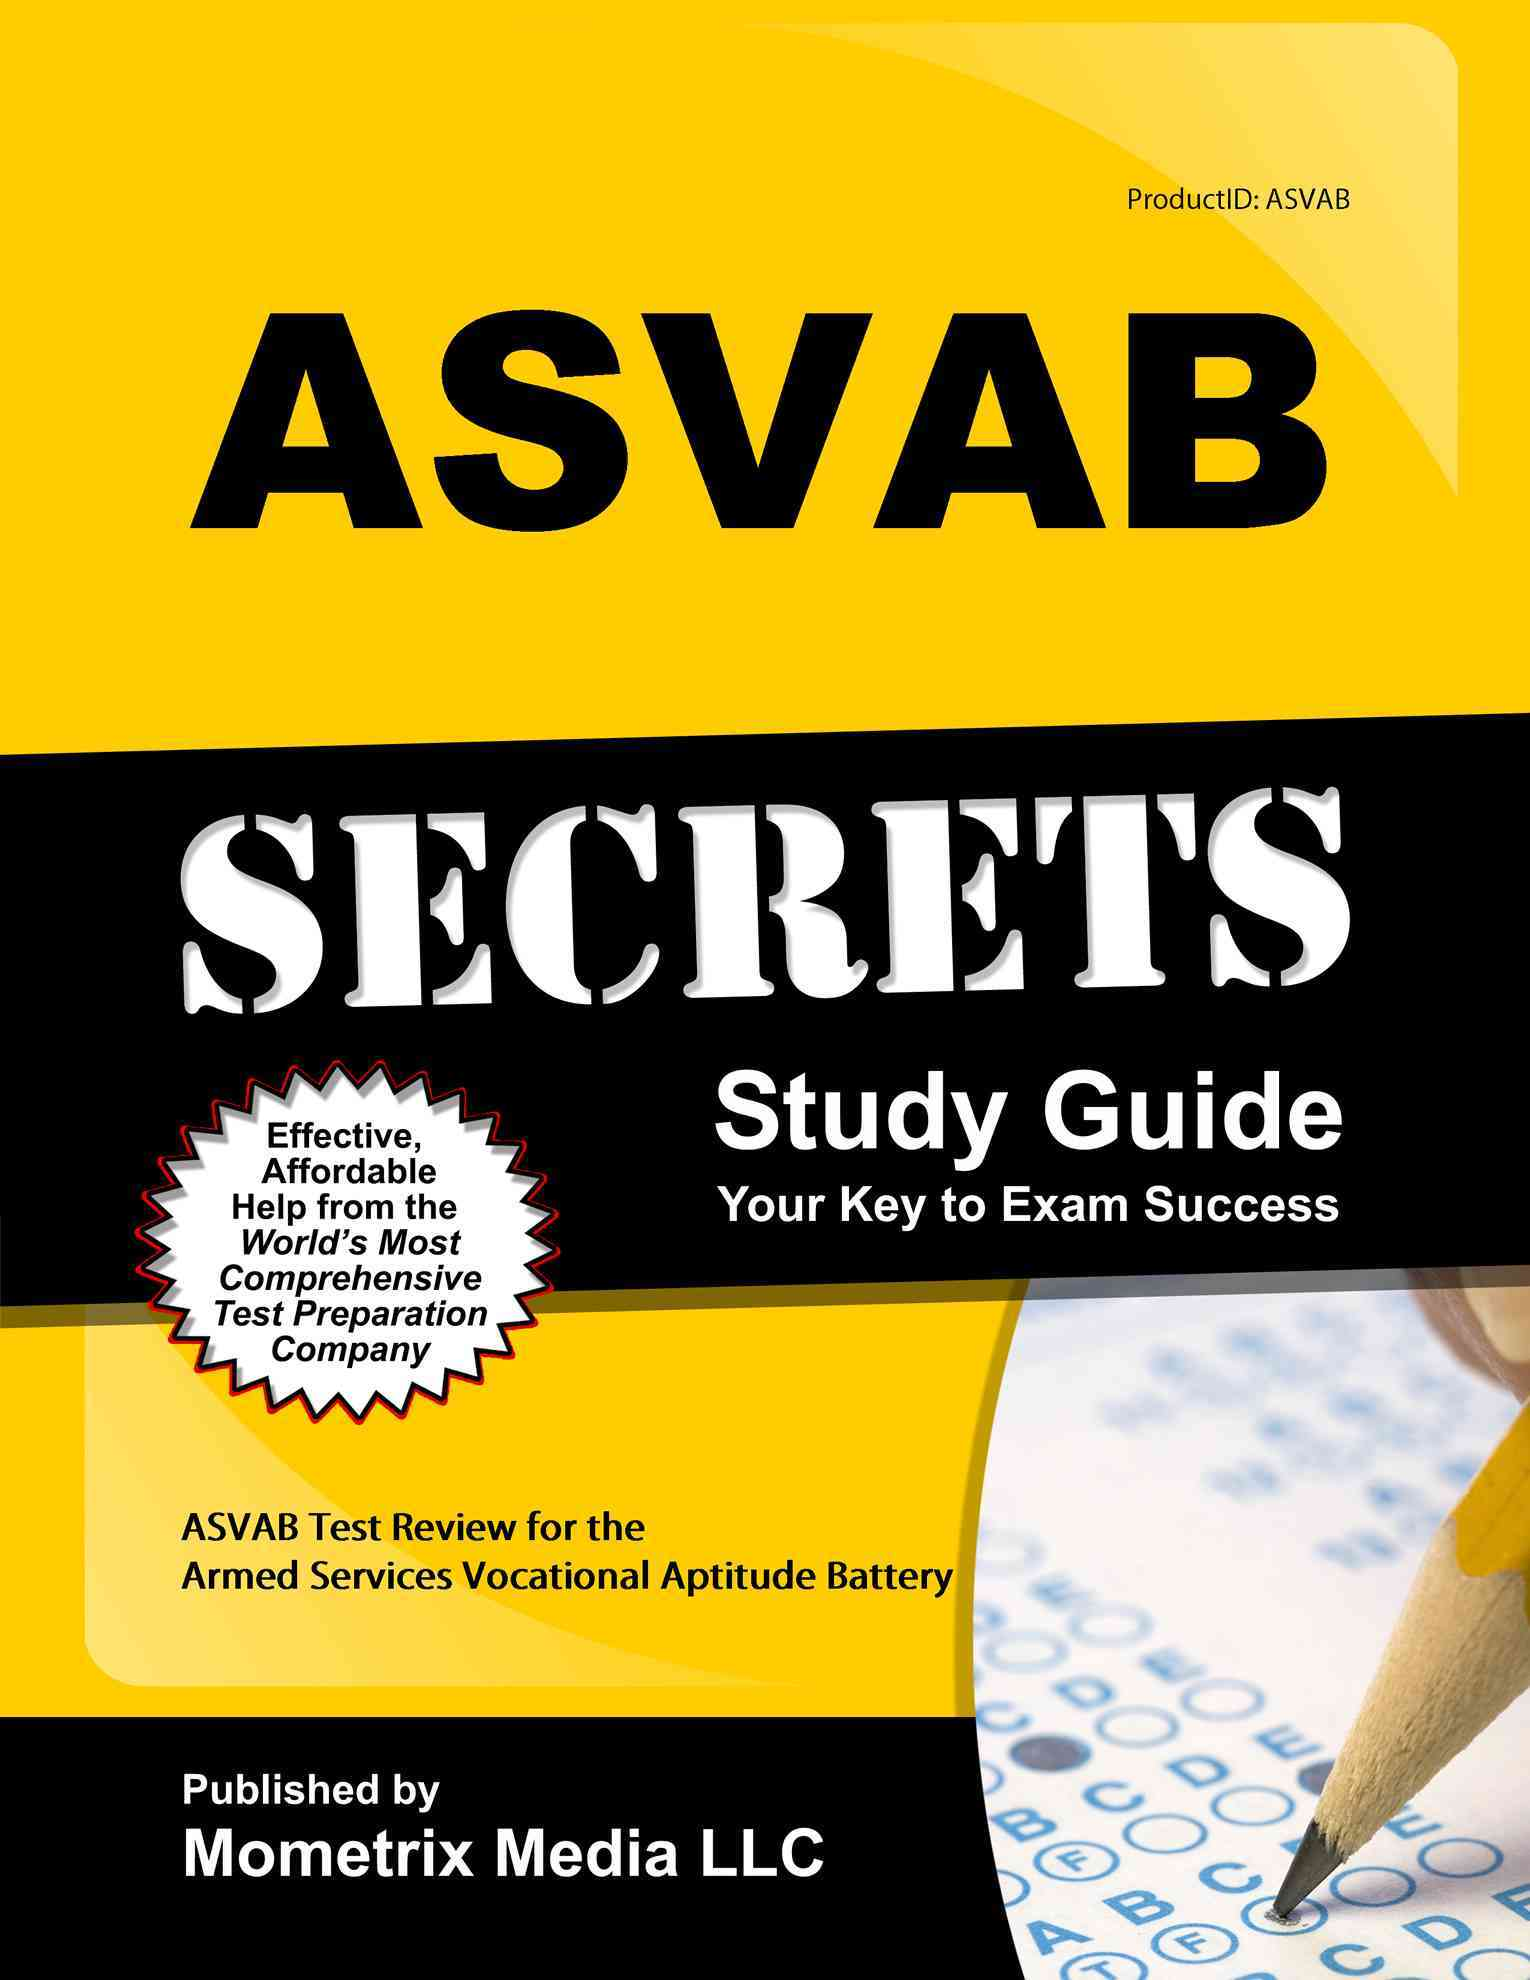 ASVAB Secrets Study Guide By Asvab Exam Secrets (EDT)